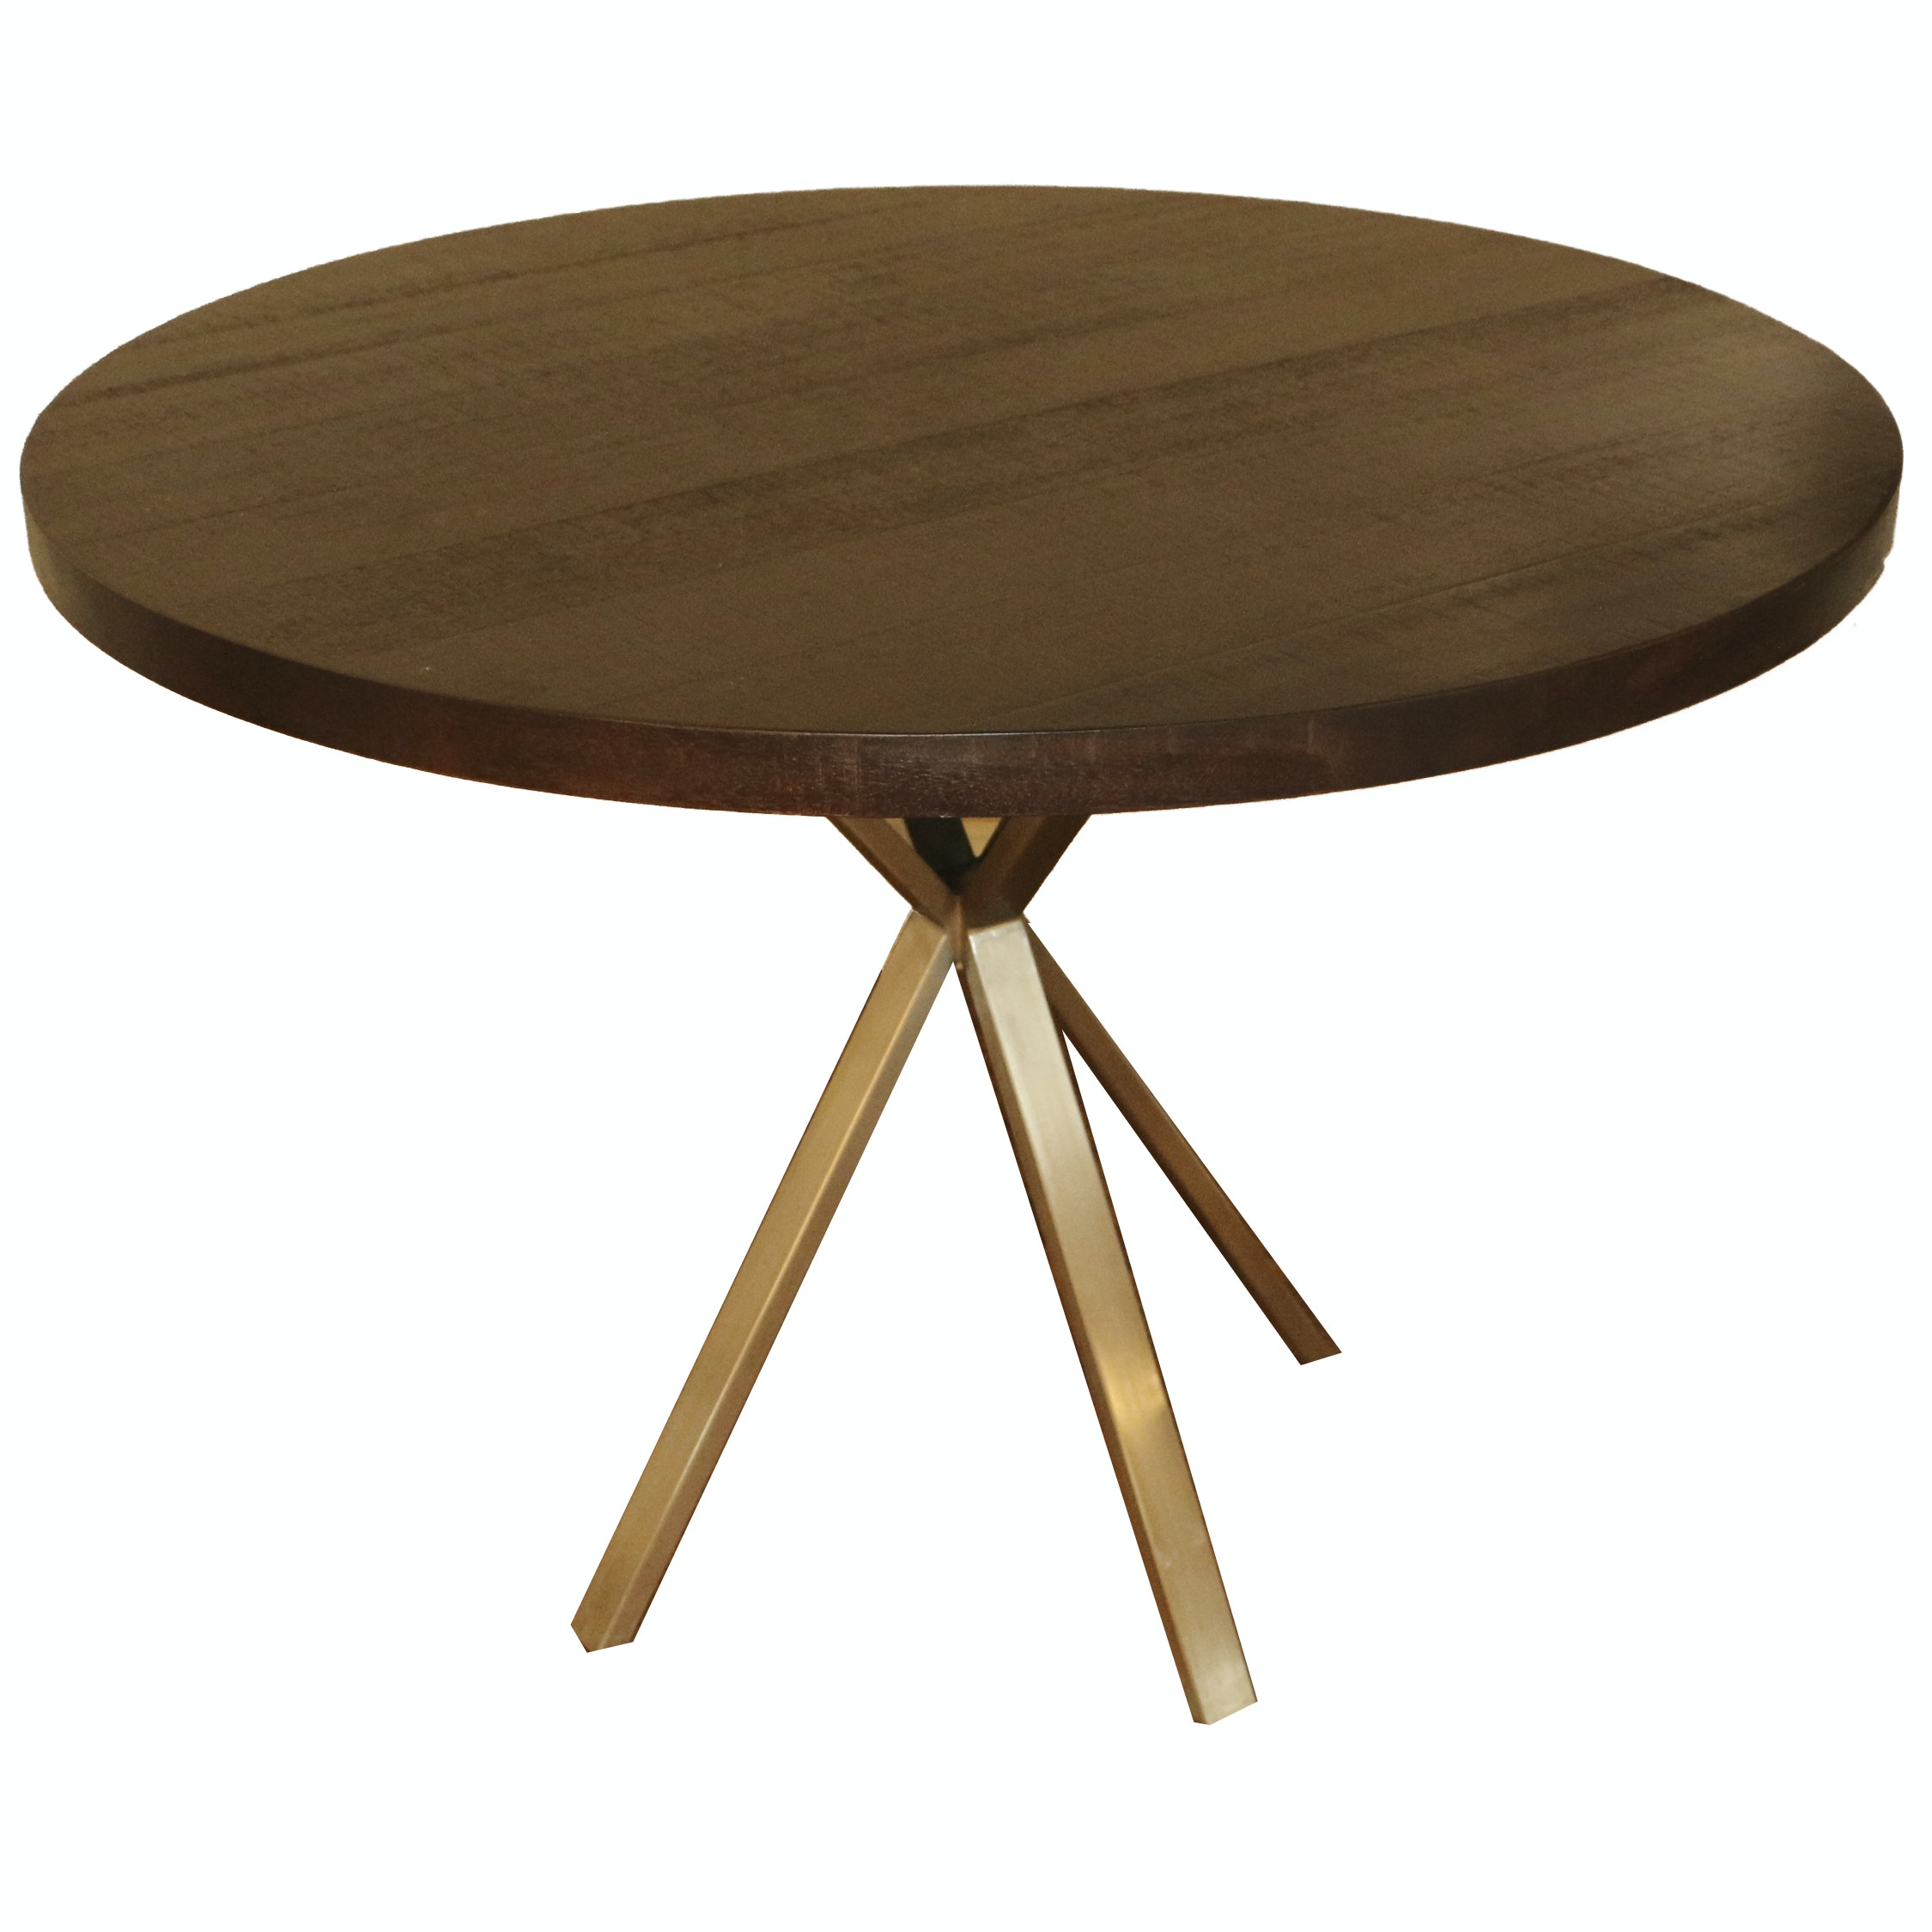 """Evans"" Wood and Metal Dining Table by Mandalay, 21st Century"